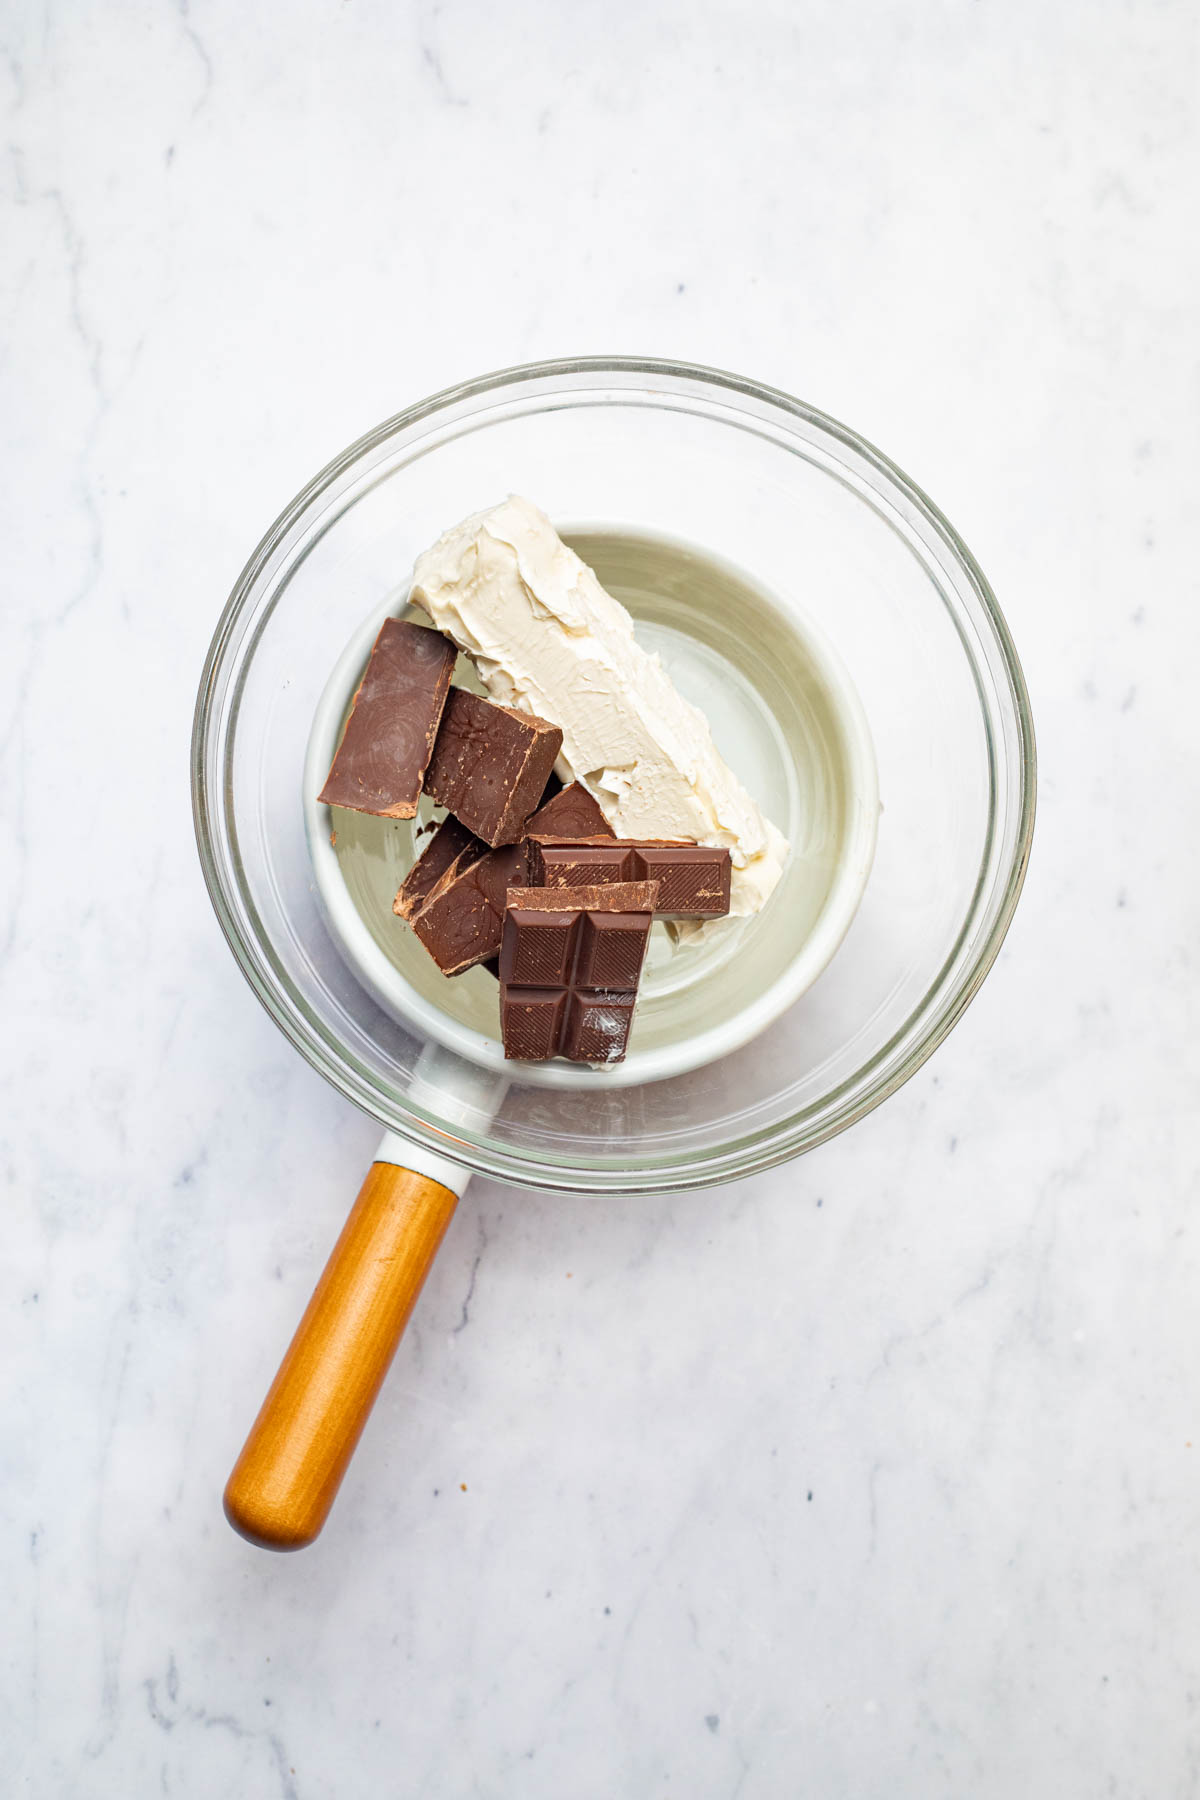 Vegan butter and dark chocolate, still solid in a glass bowl.